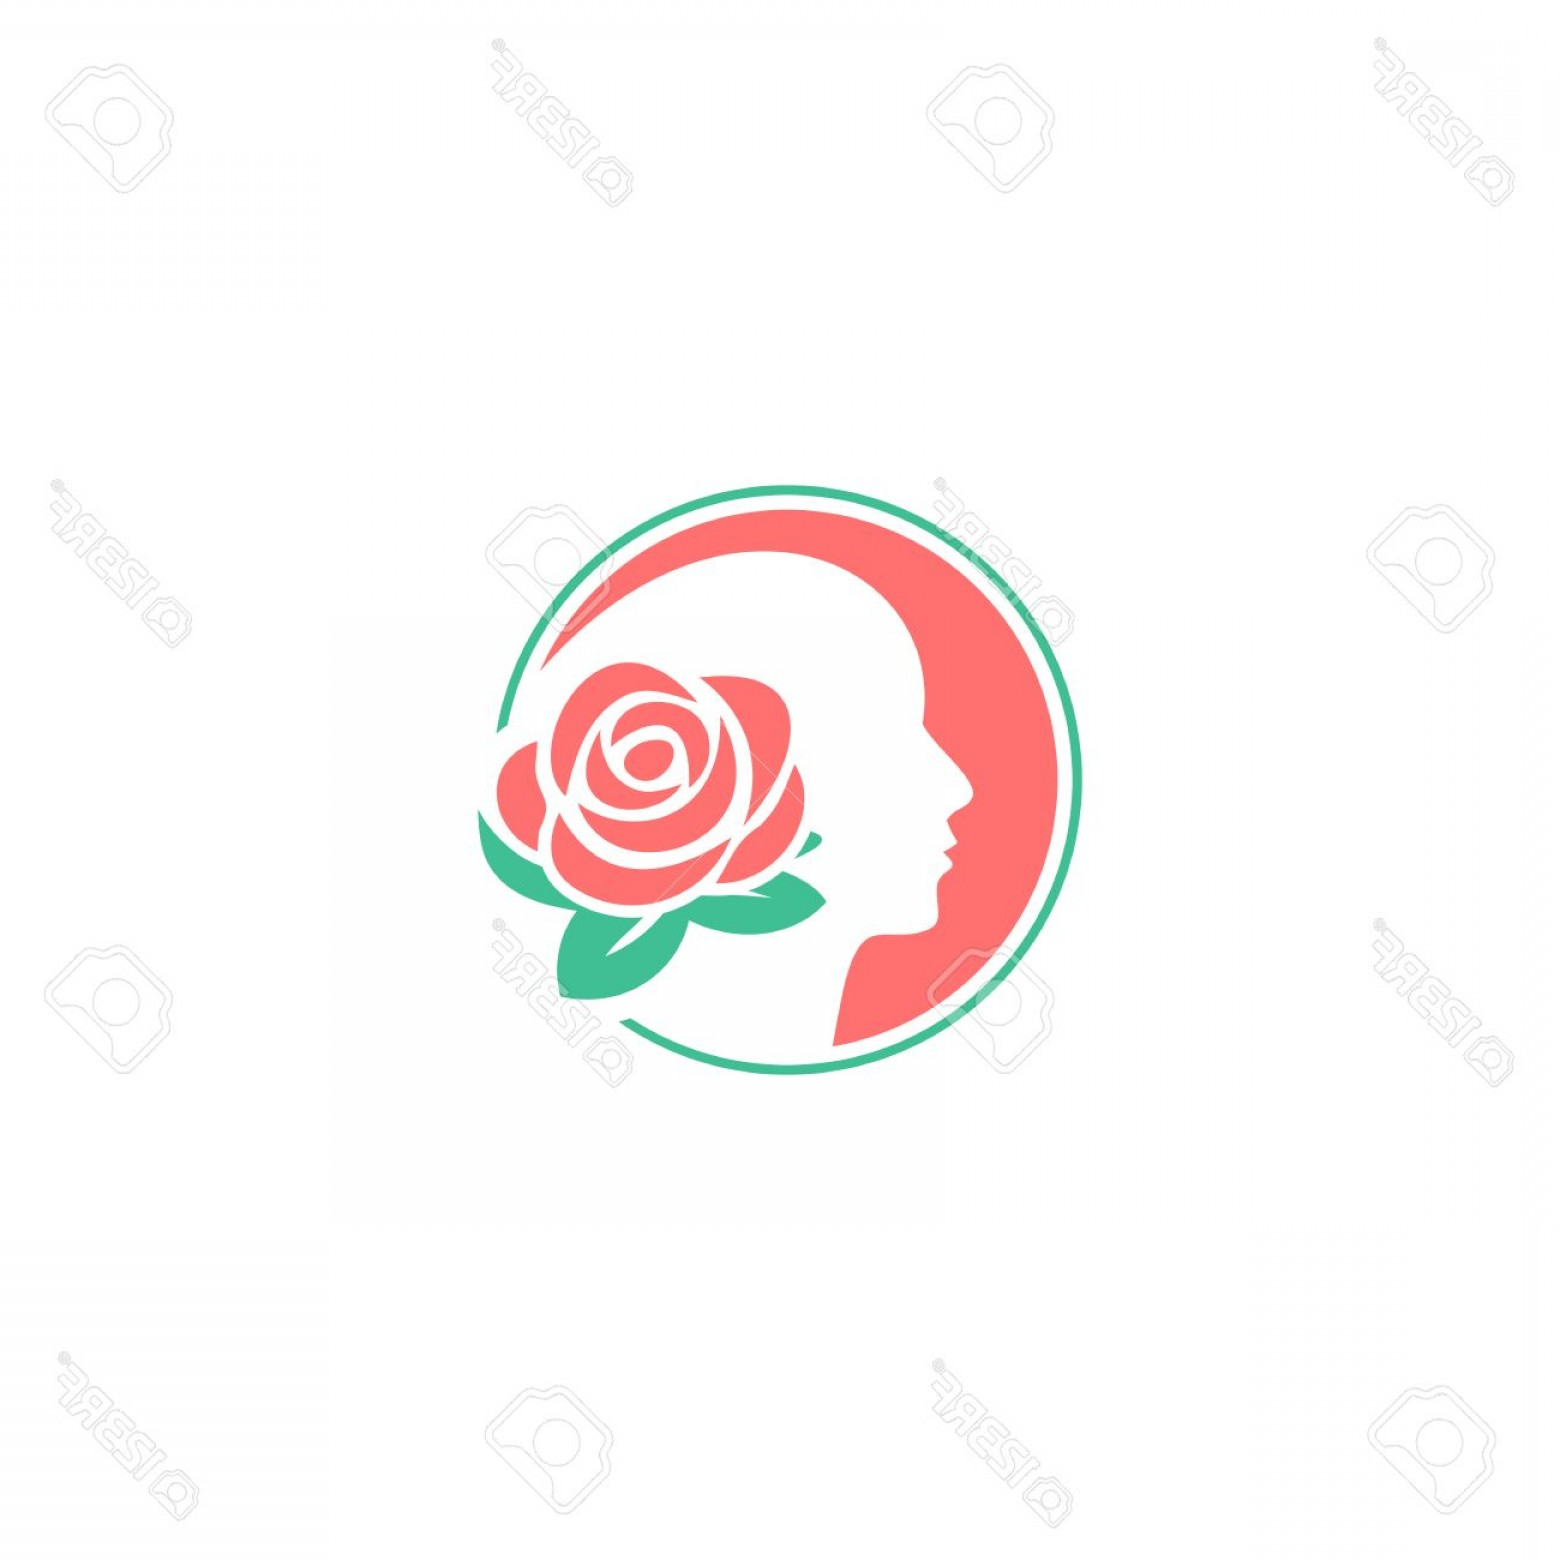 Modern Flower Logo Vector: Photostock Vector Flower Logo Design Template Woman Face Vector Illustration Modern Barbershop Flower Pink Color Logo